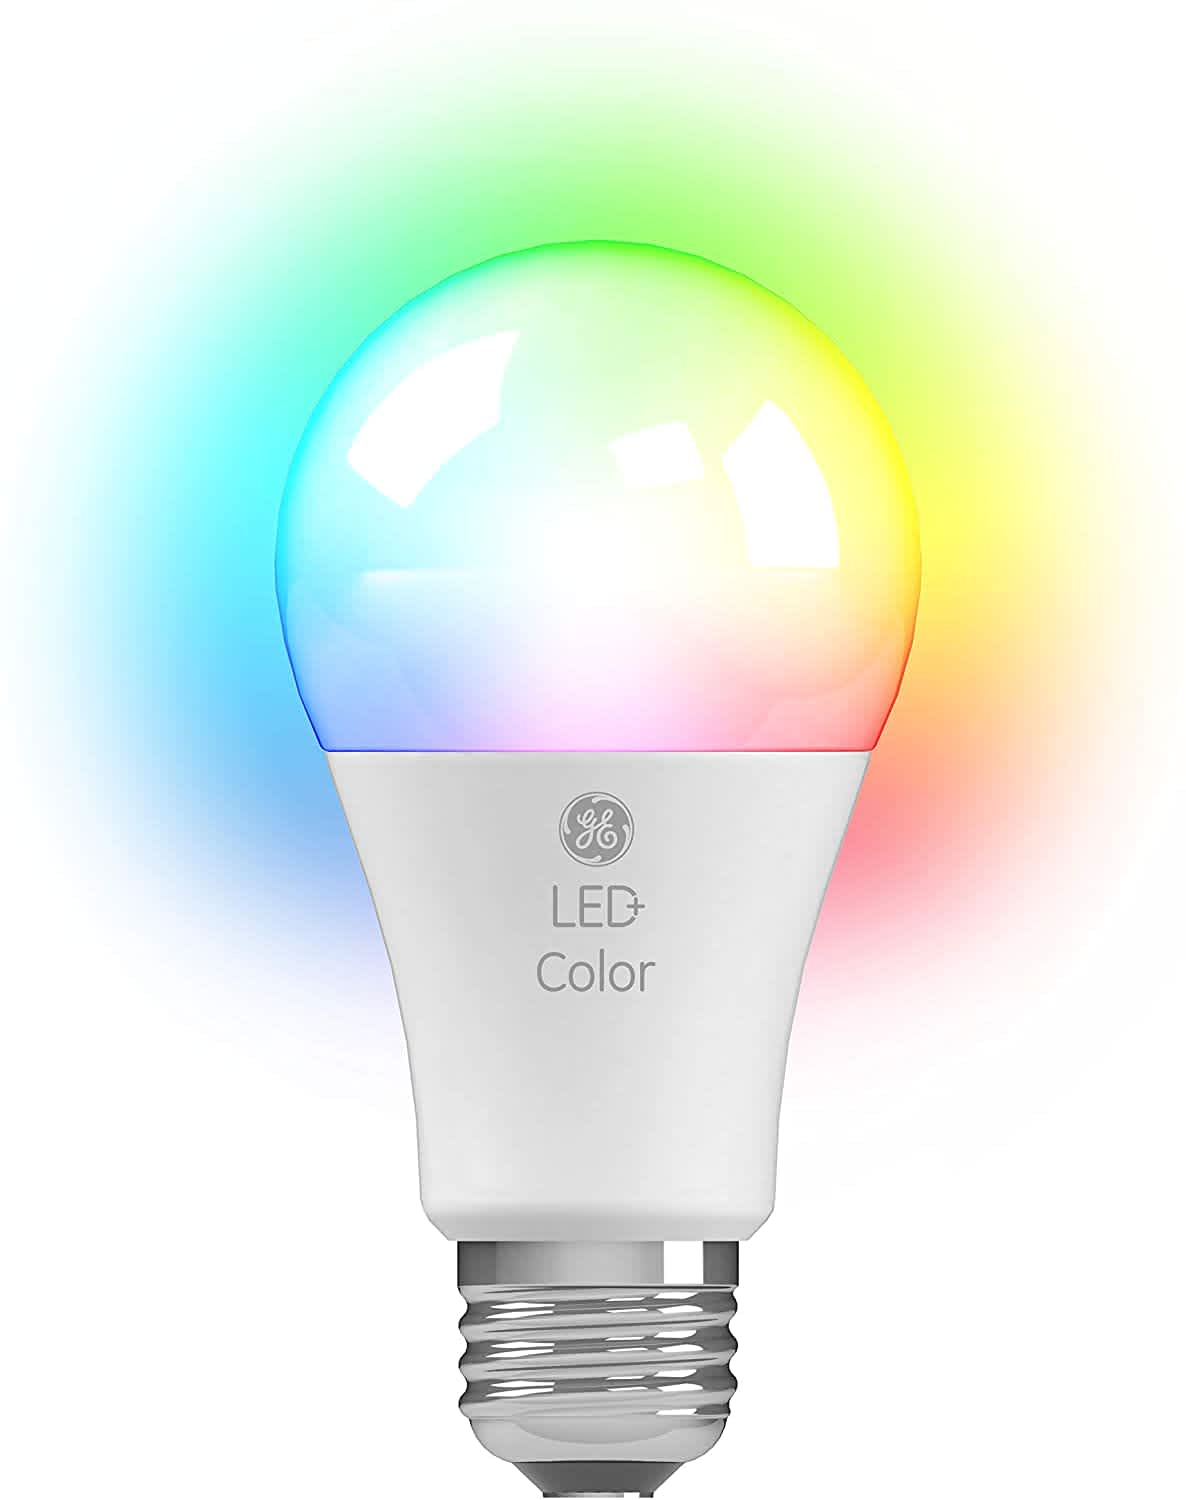 GE Smart Light Bulbs, Switches and Indoor Grow Lights